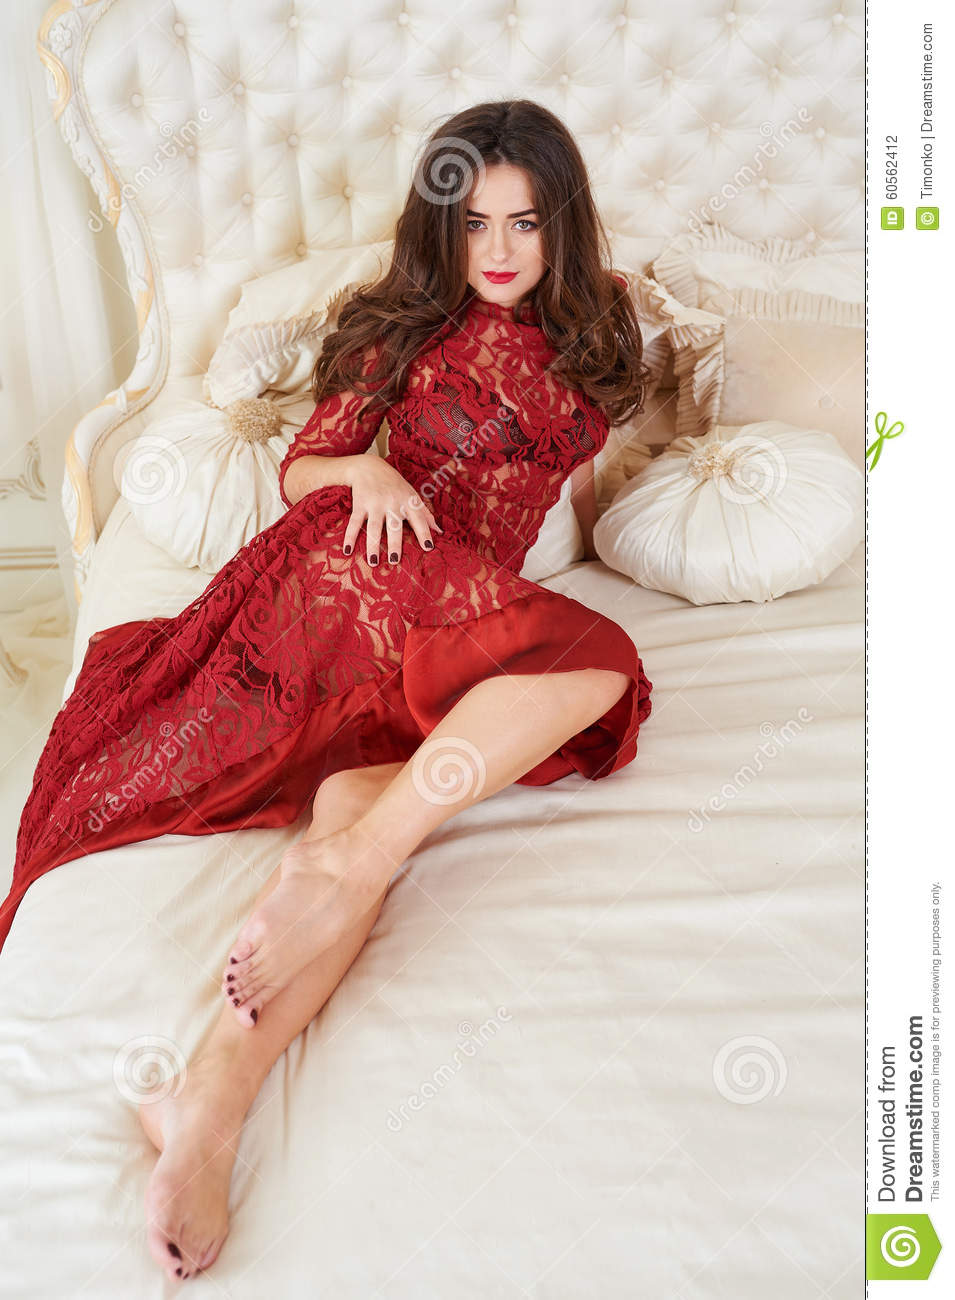 Fashion portrait of elegant young woman in red dress in luxurious interior